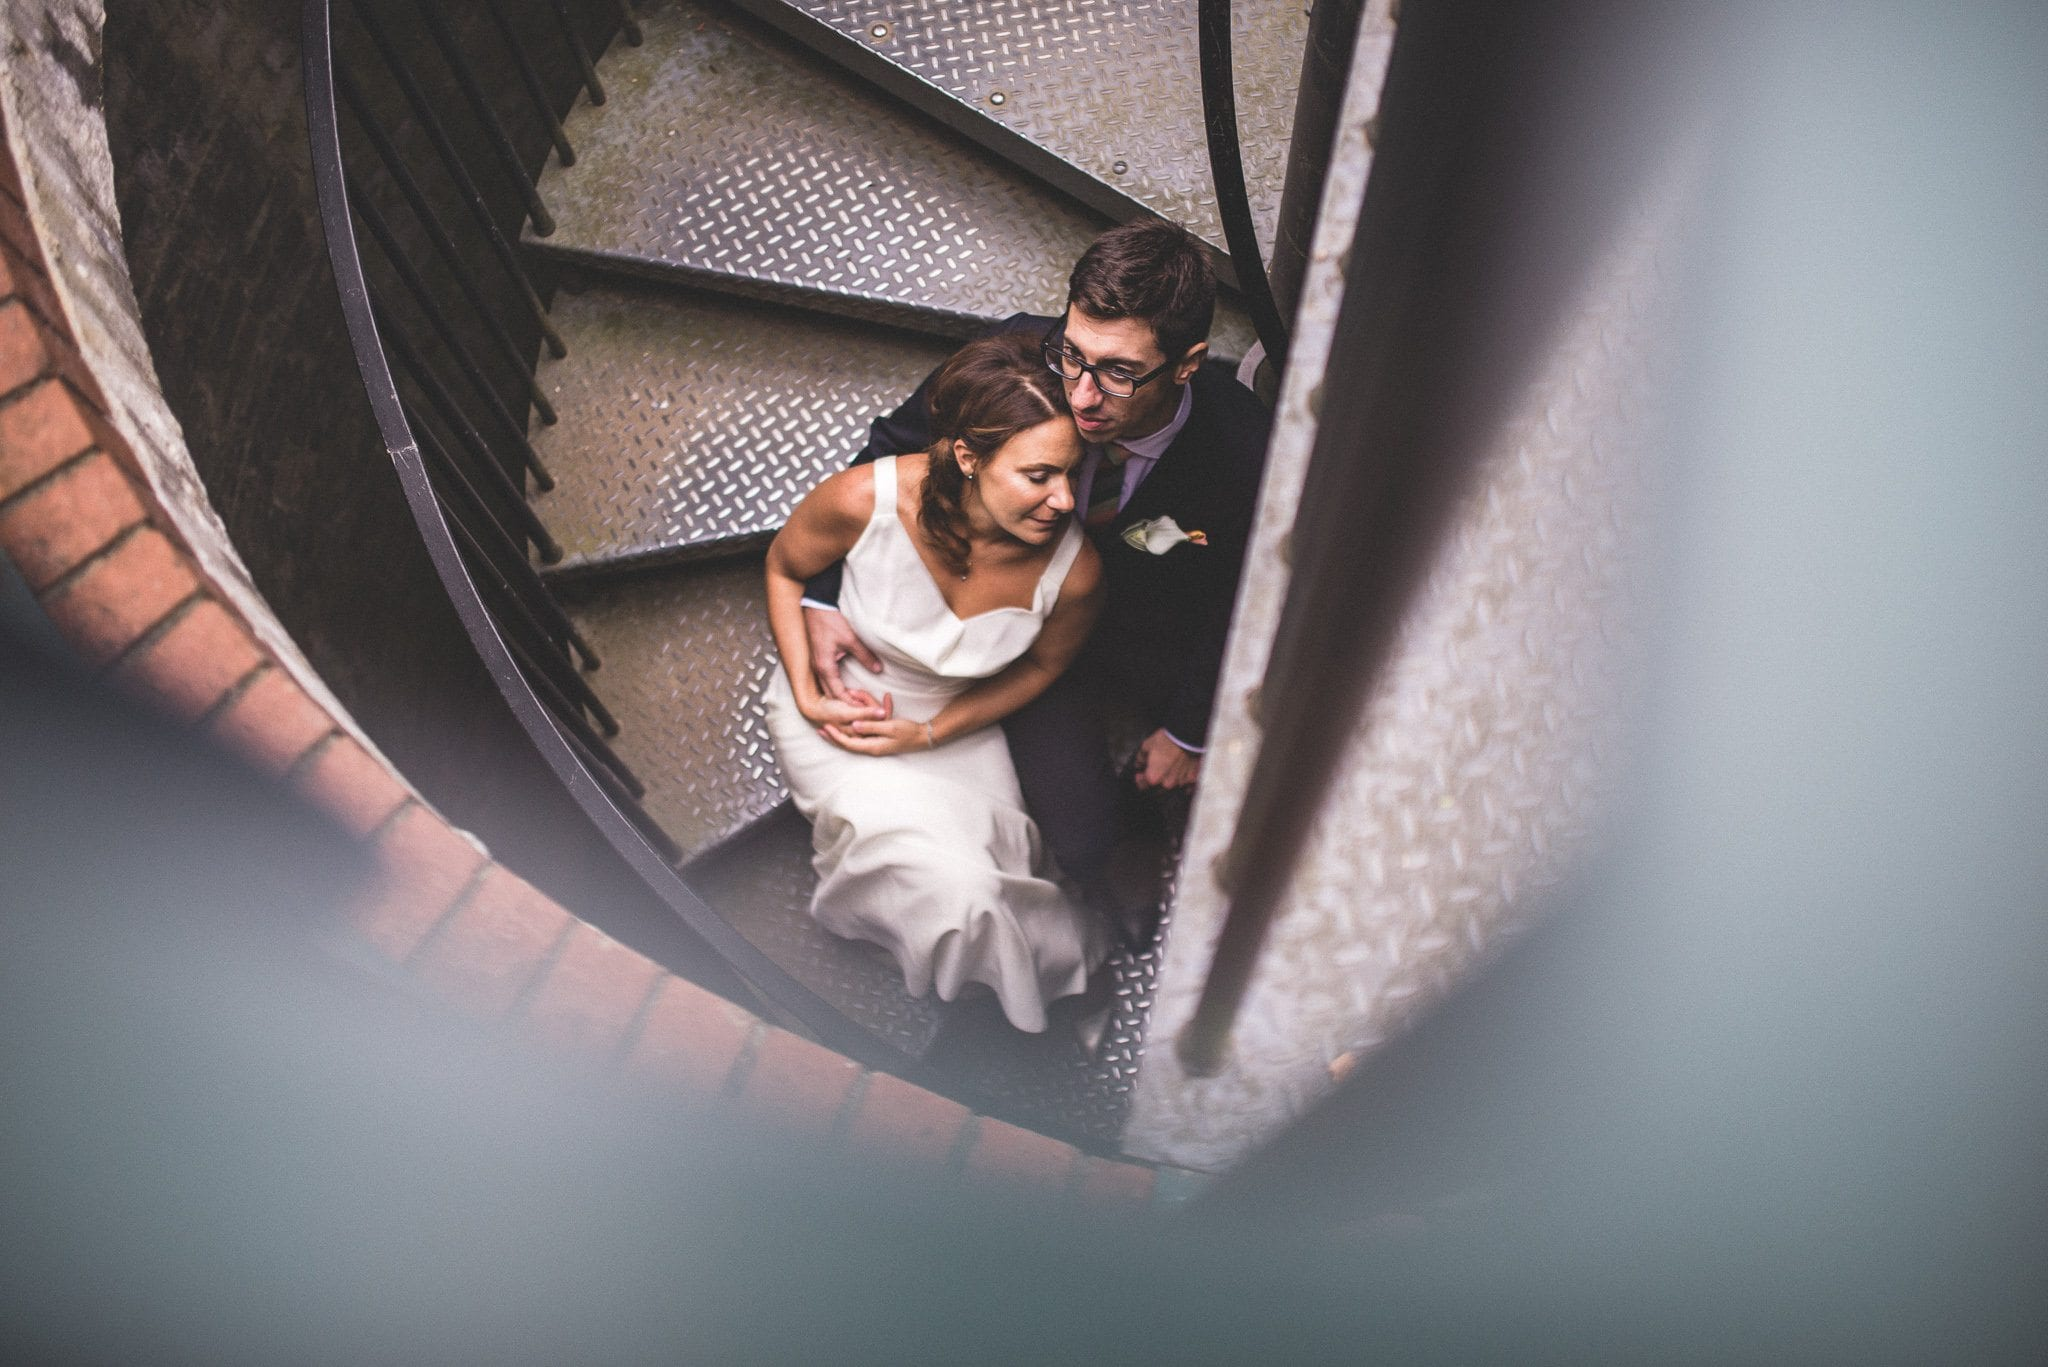 A shot from above. Marco holds his new bride tenderly as the couple sit on a spiral staircase